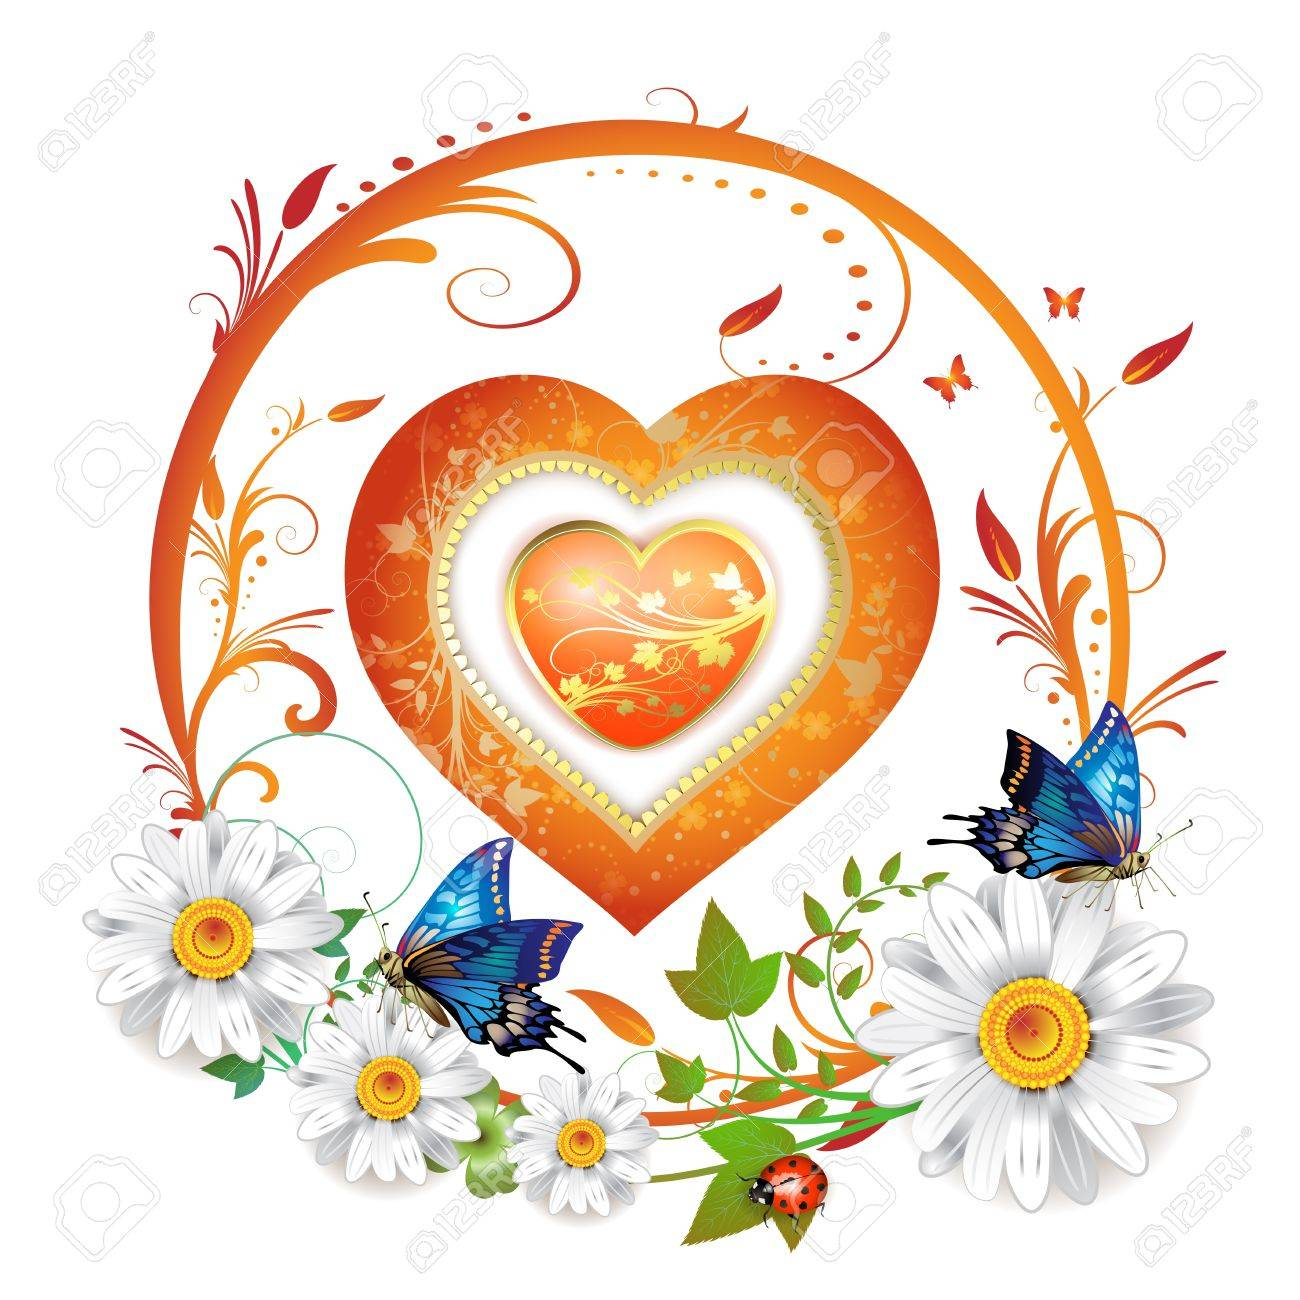 Valentine's day card. Heart and butterflies Stock Vector - 9508517